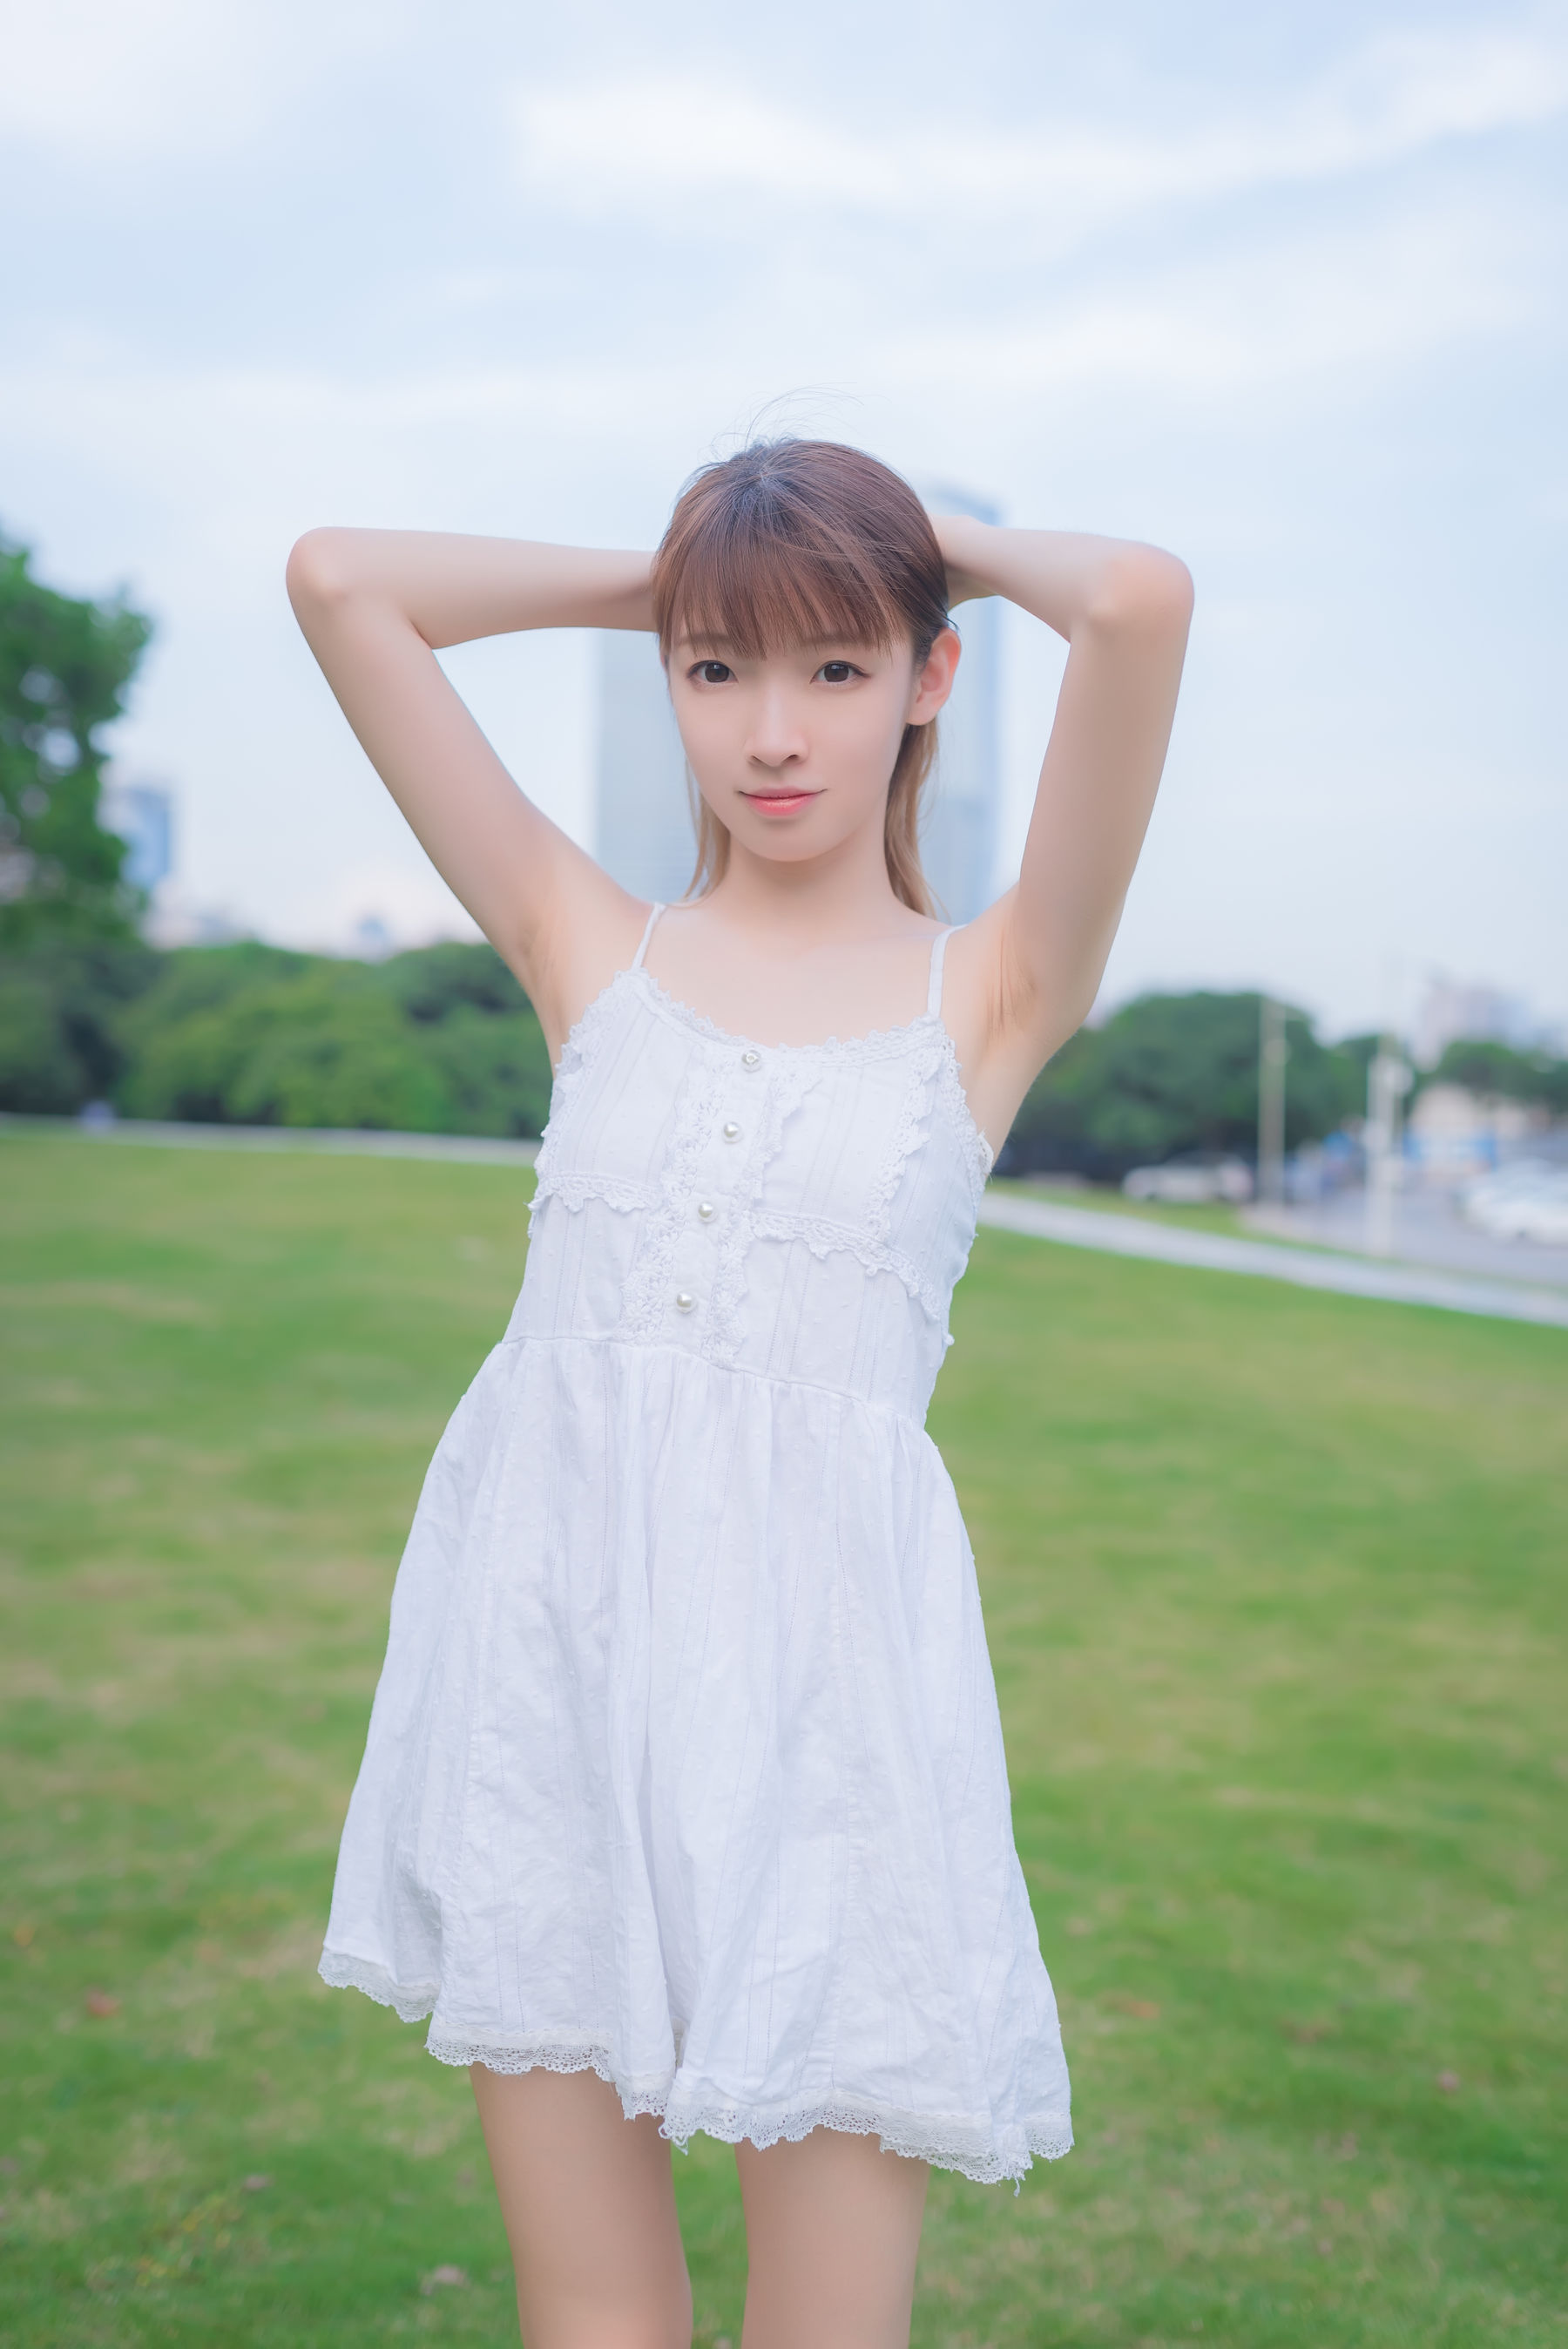 [Wind Land] No.056 pure pure girl photo collection